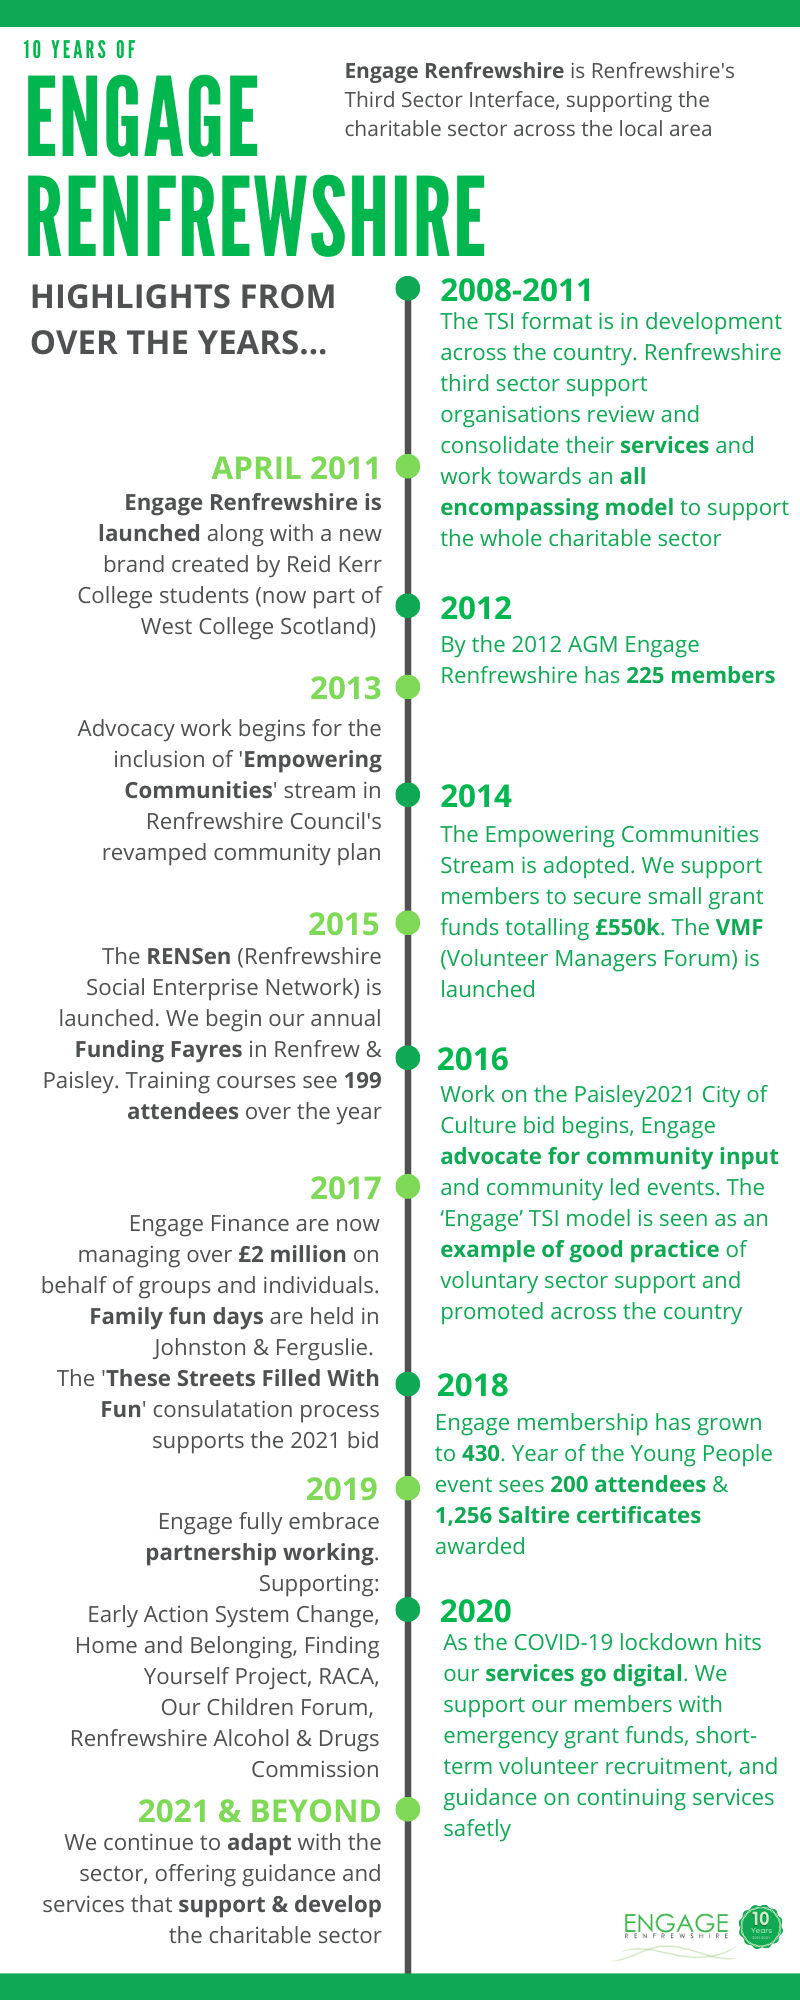 Engage Timeline - Some Highlights through the Years